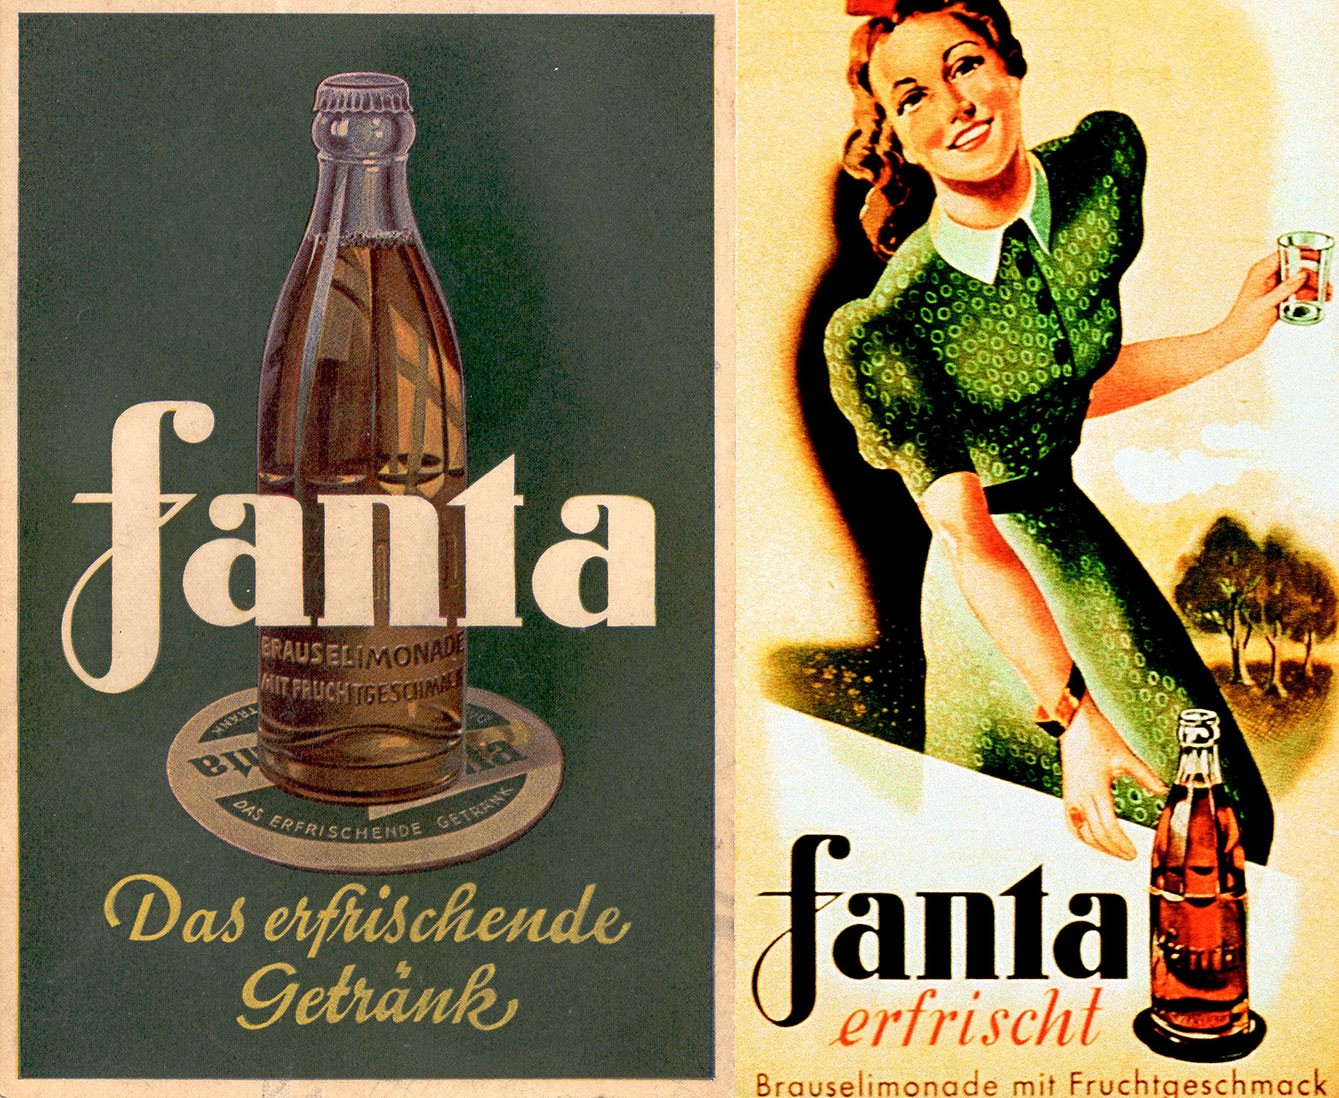 Coca-Cola collaborated with the Nazis in the 1930s, and Fanta is ...